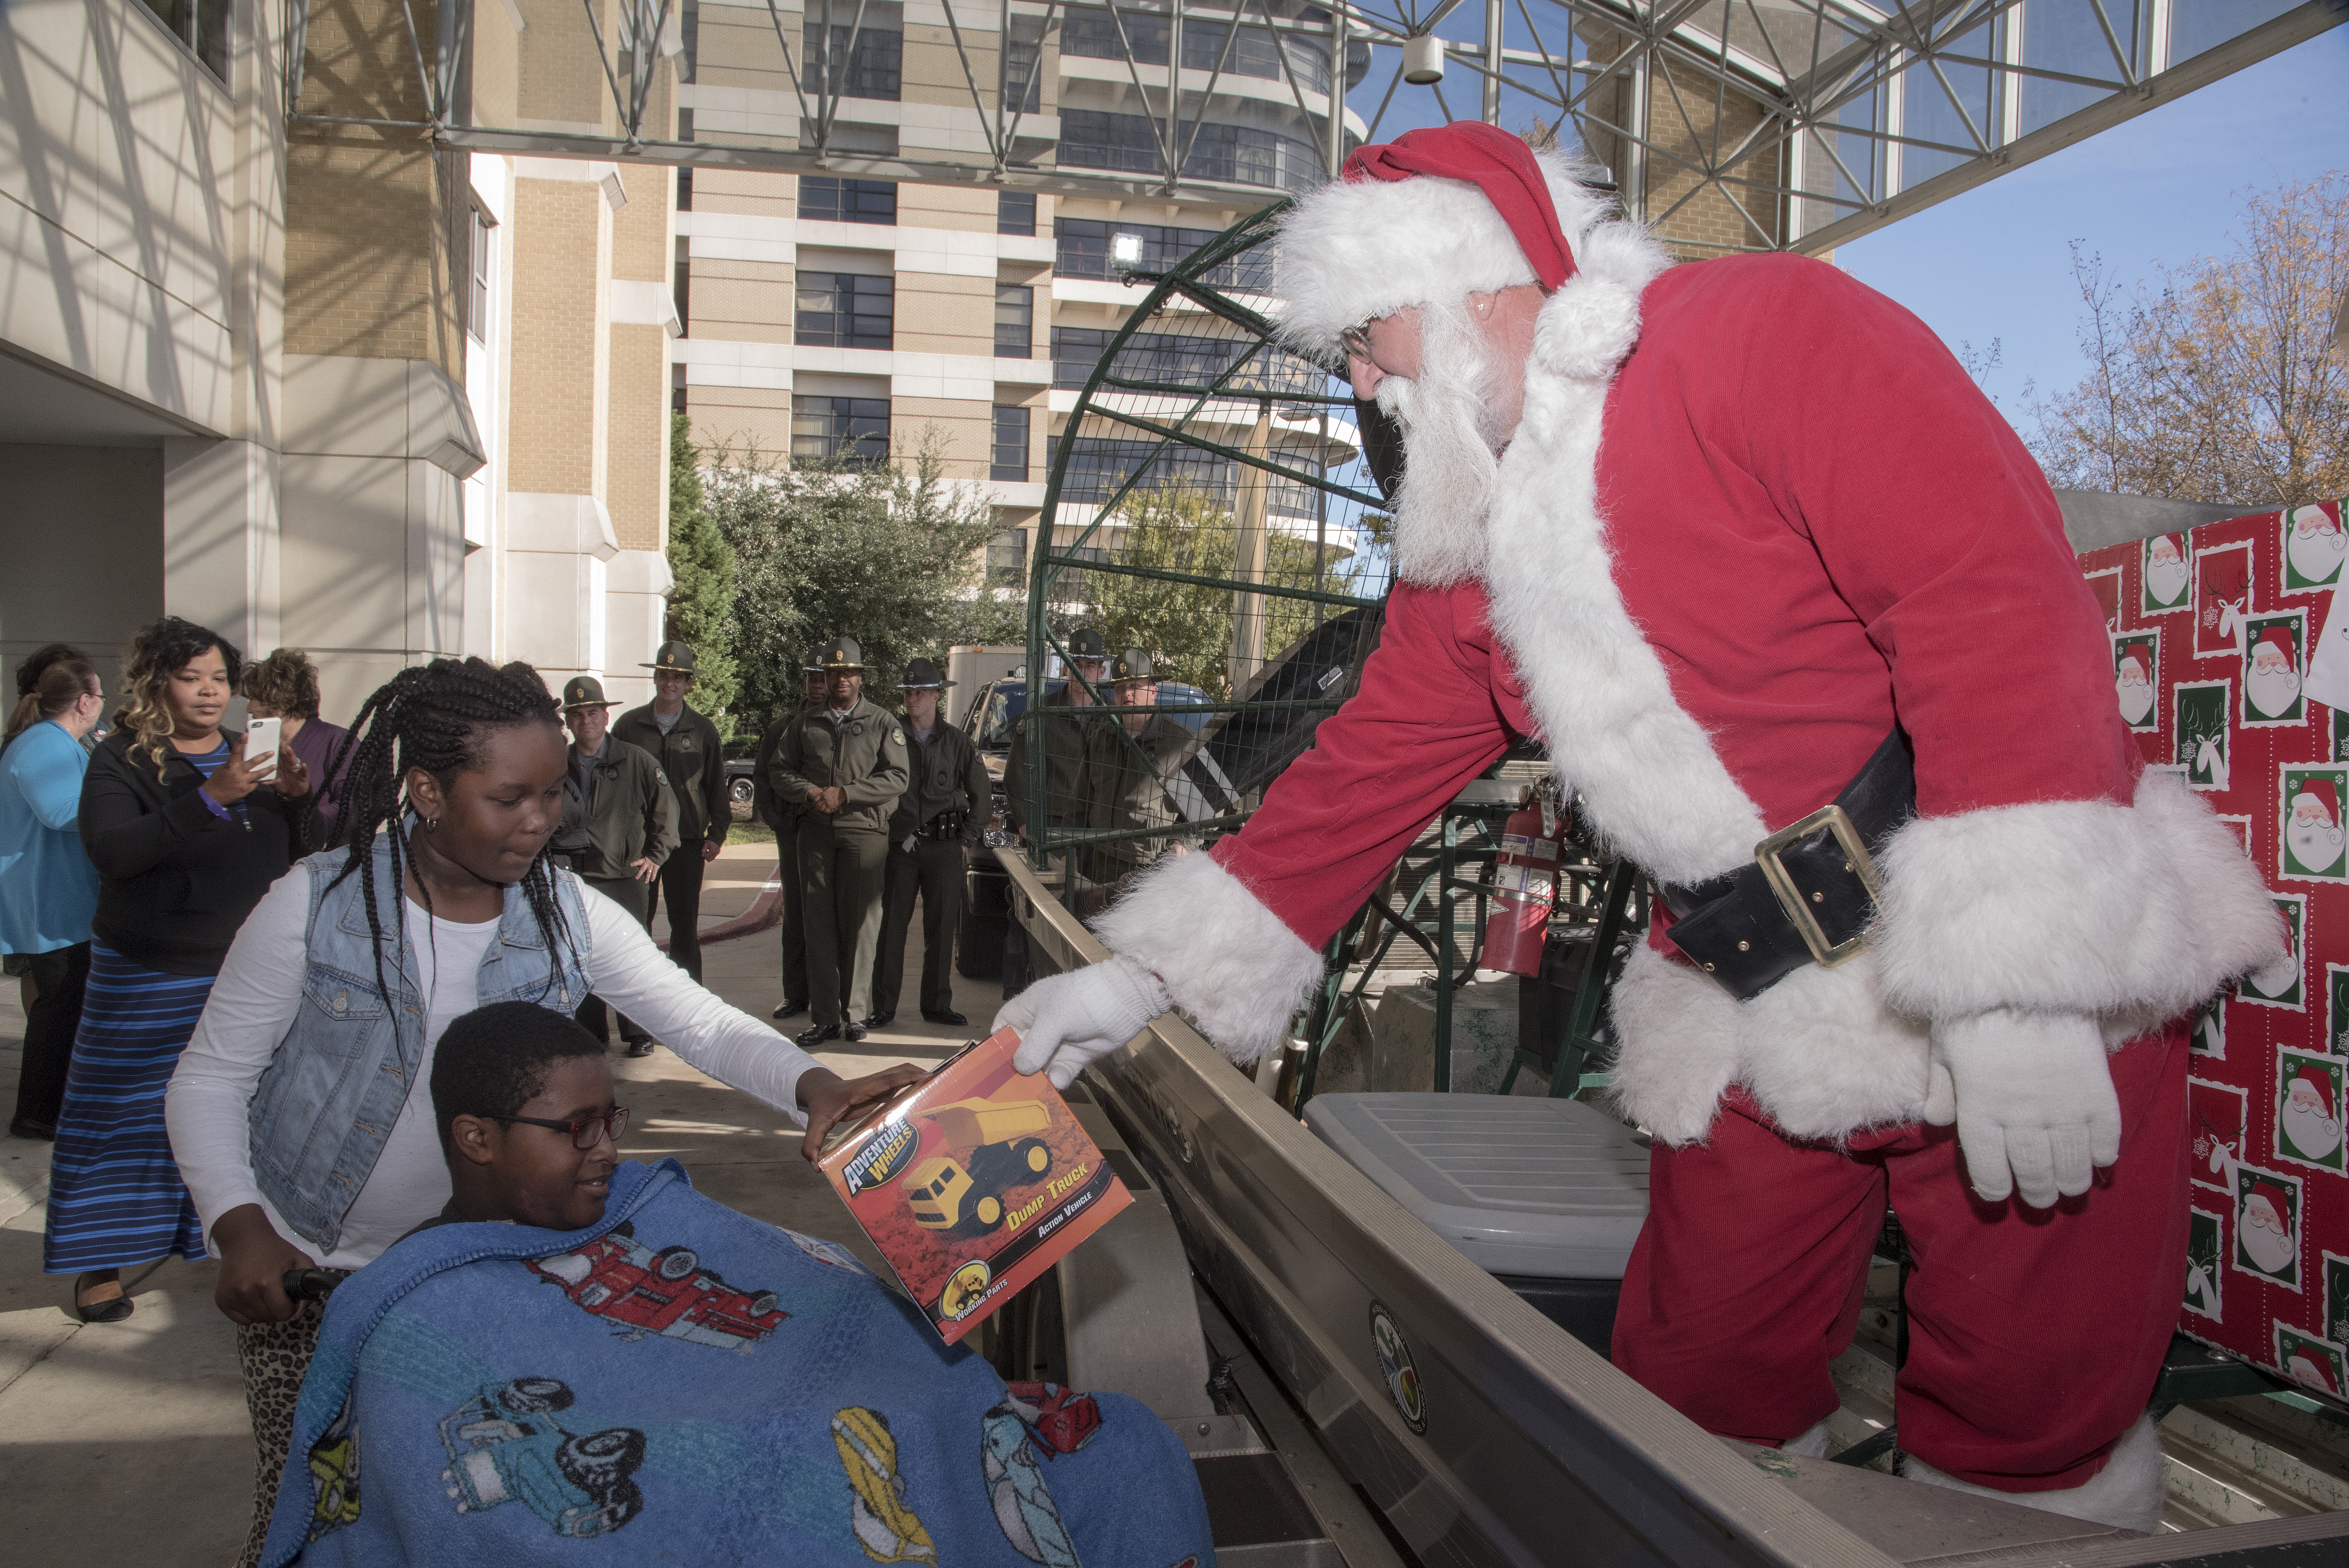 MDWFP officers, Santa wrap up Christmas for Batson